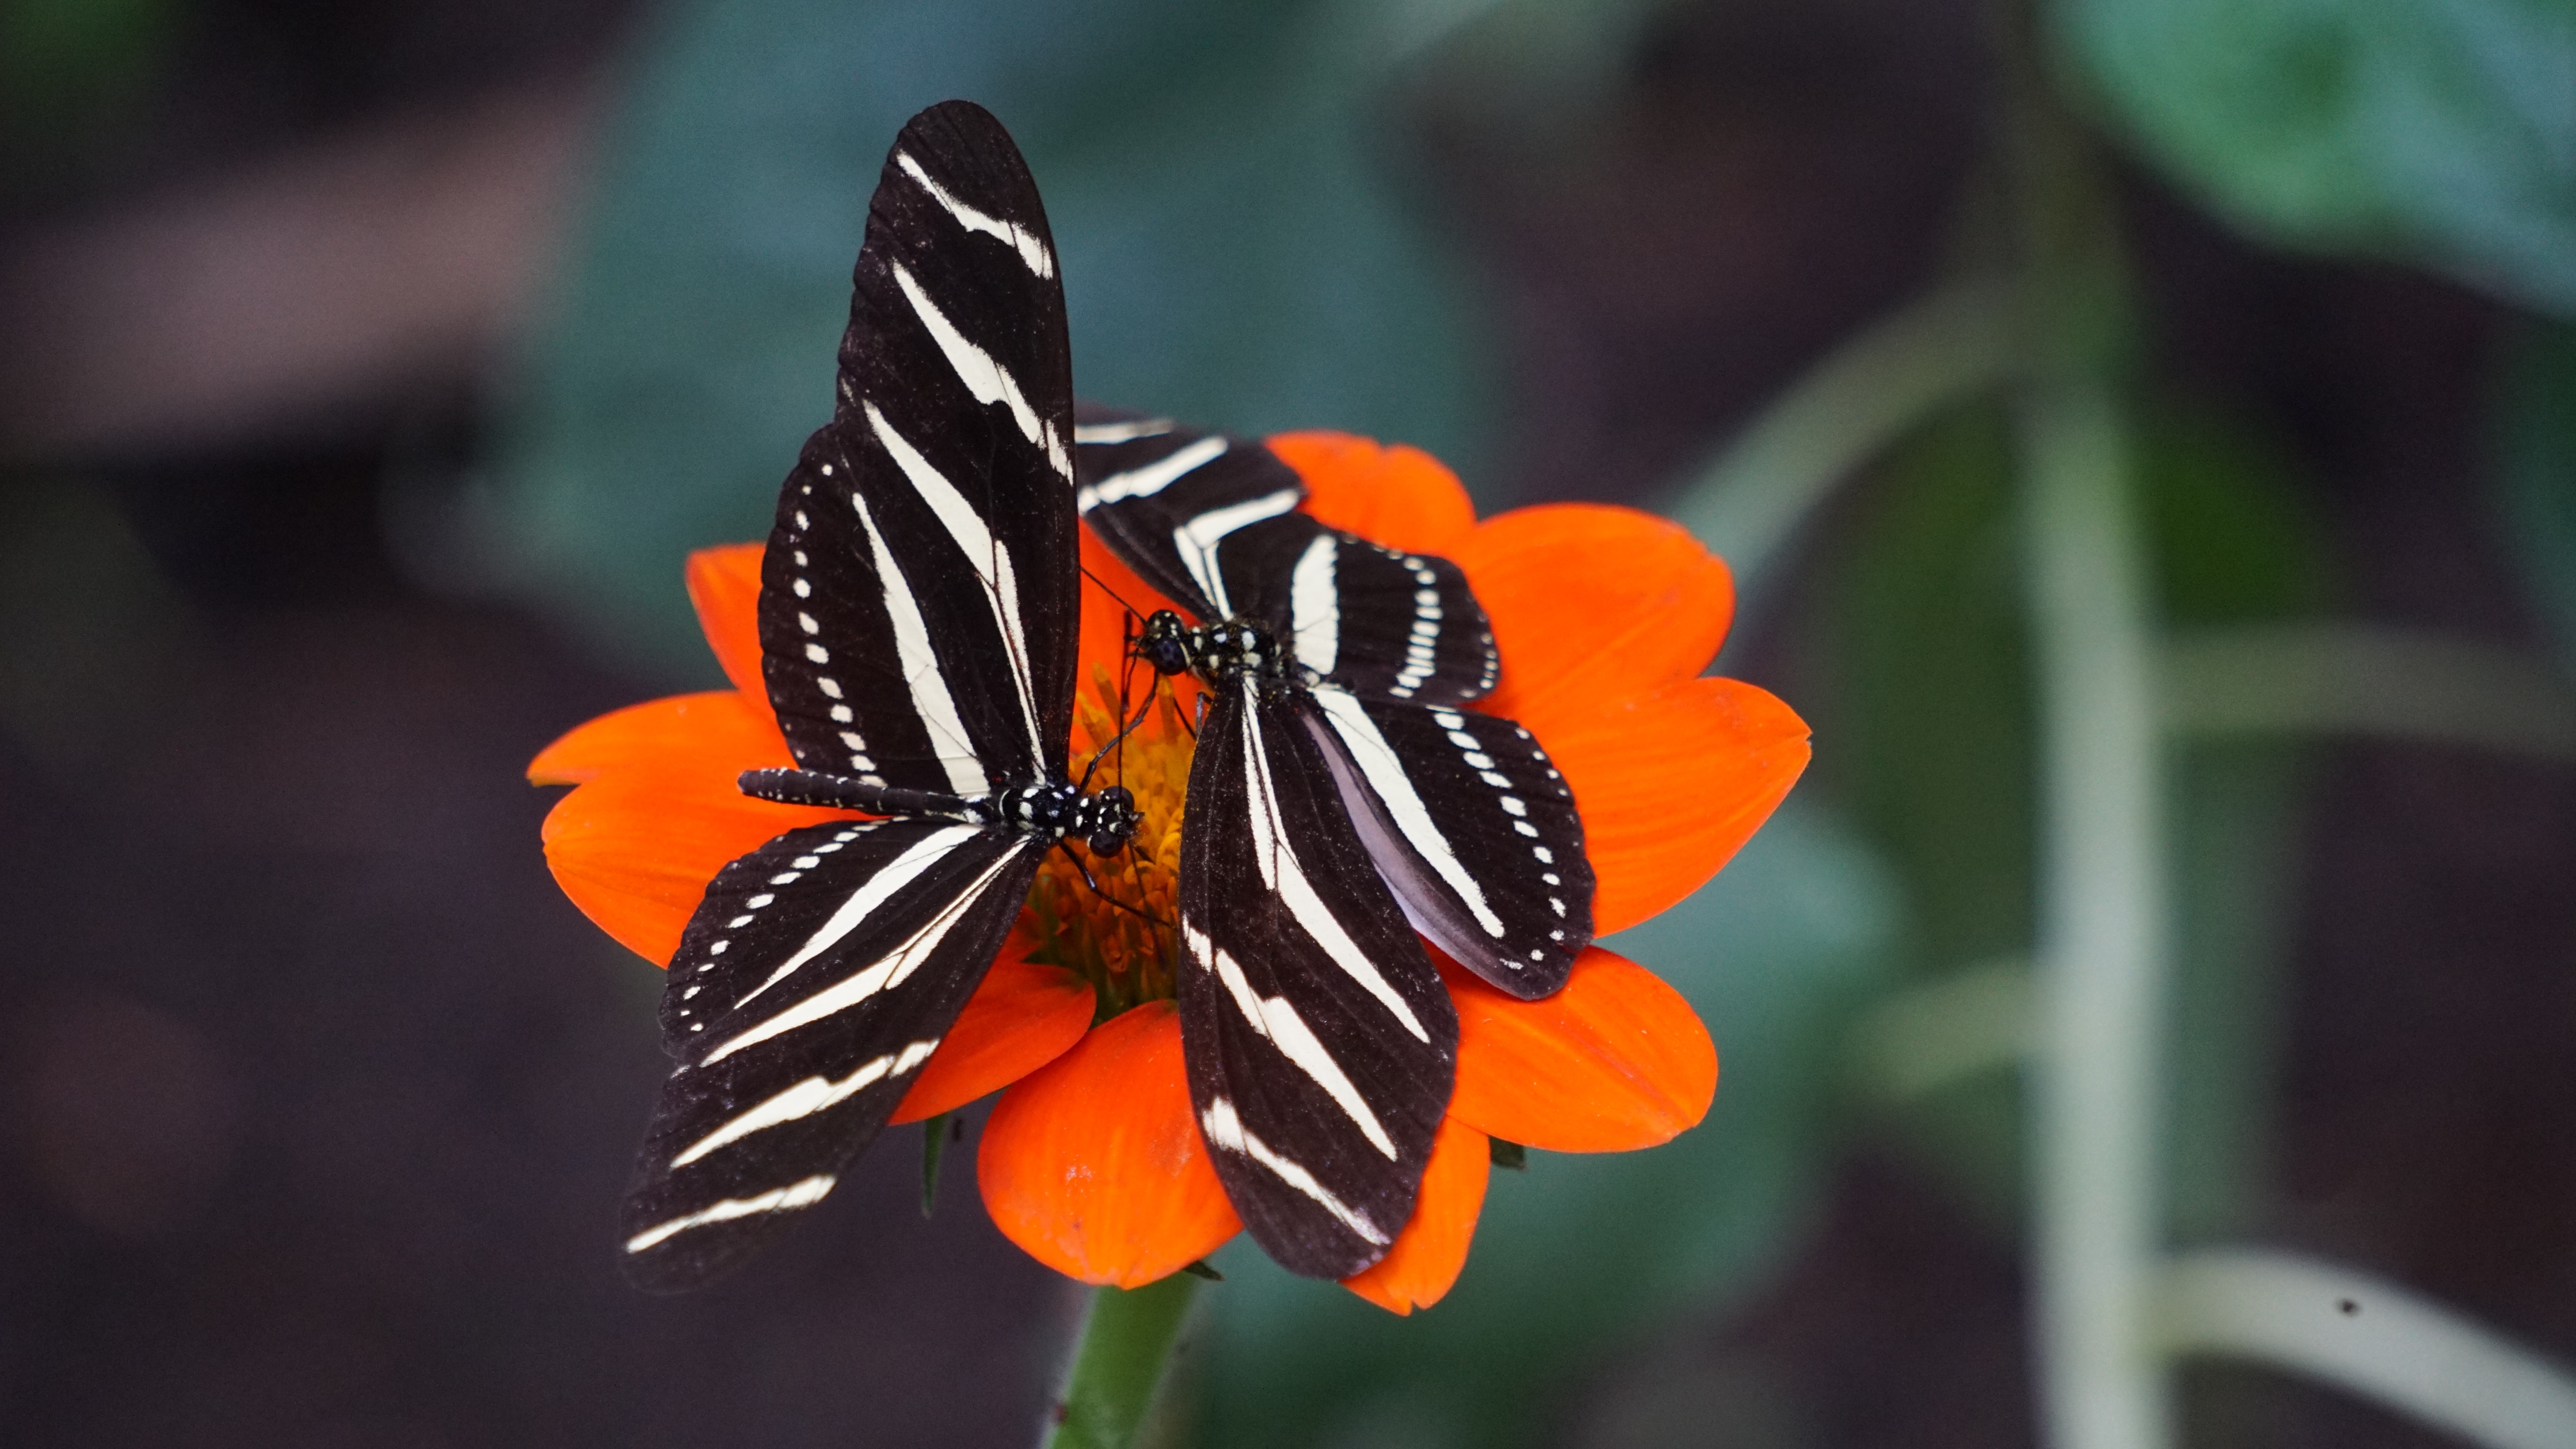 Two black butterflies with white stripes on their wings on a deep orange flower